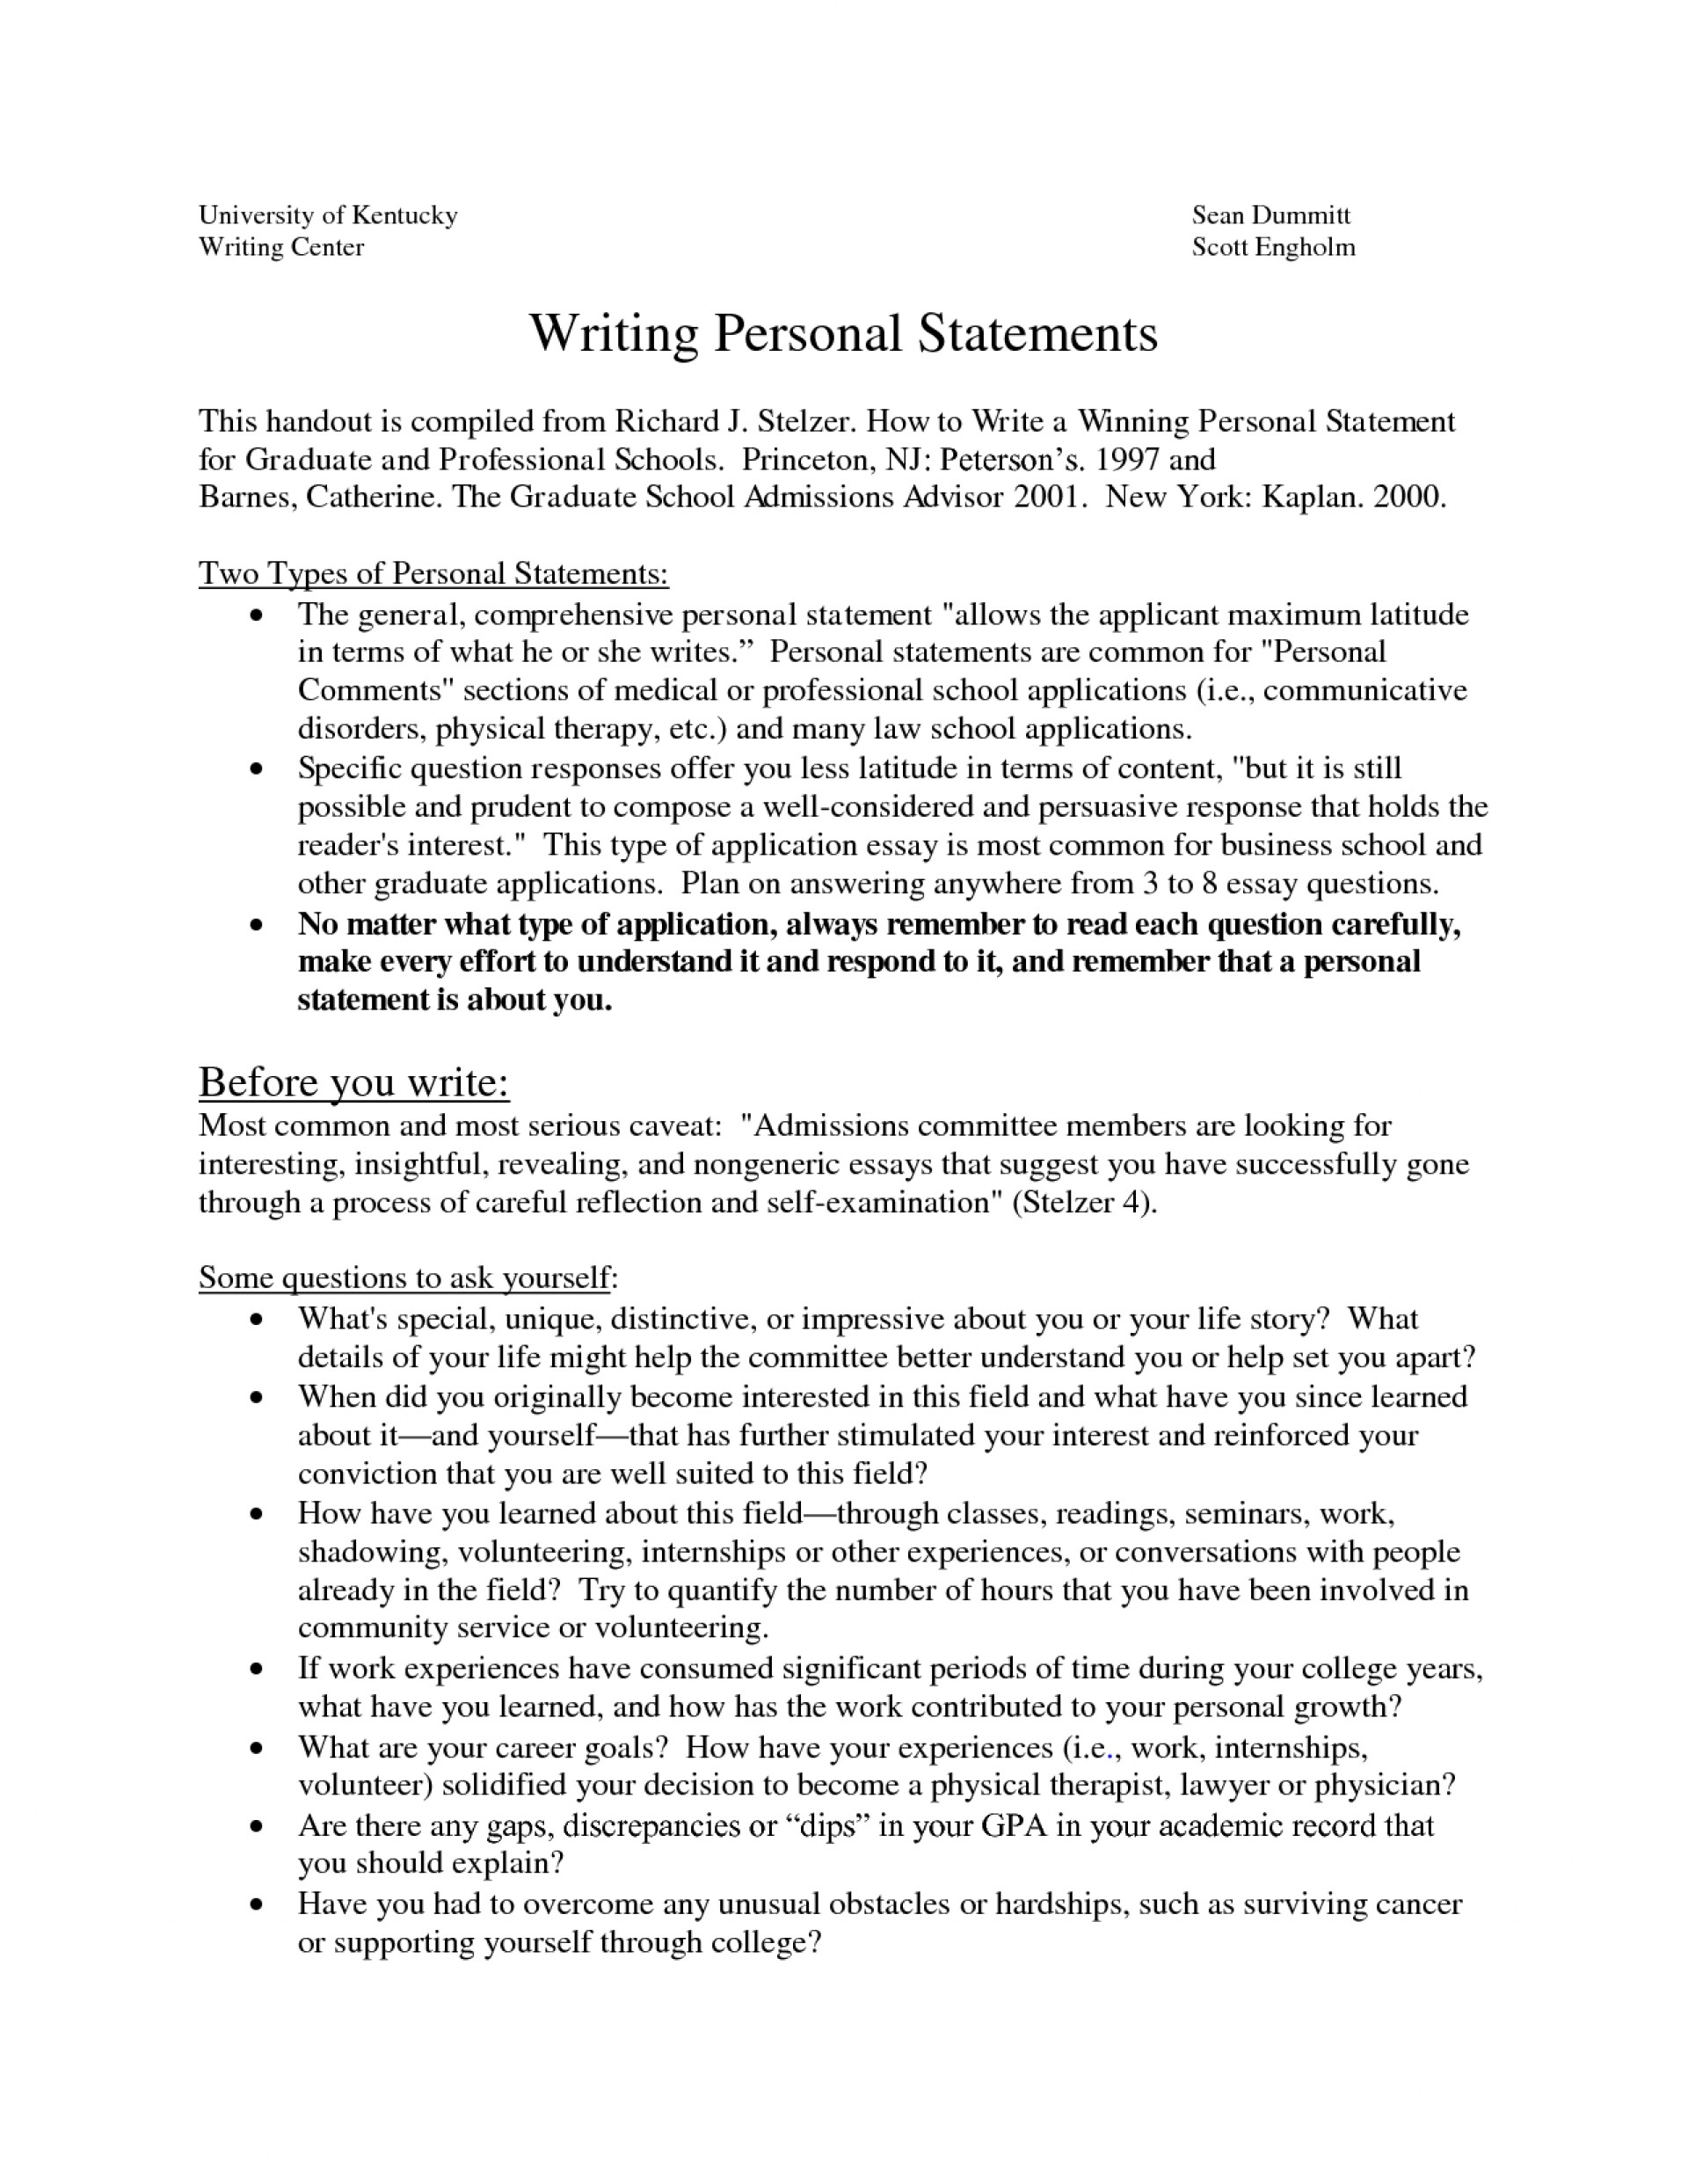 017 Essay Example How To Write Graduate School Images About Social Work Grad Personal Statement Rare 1920